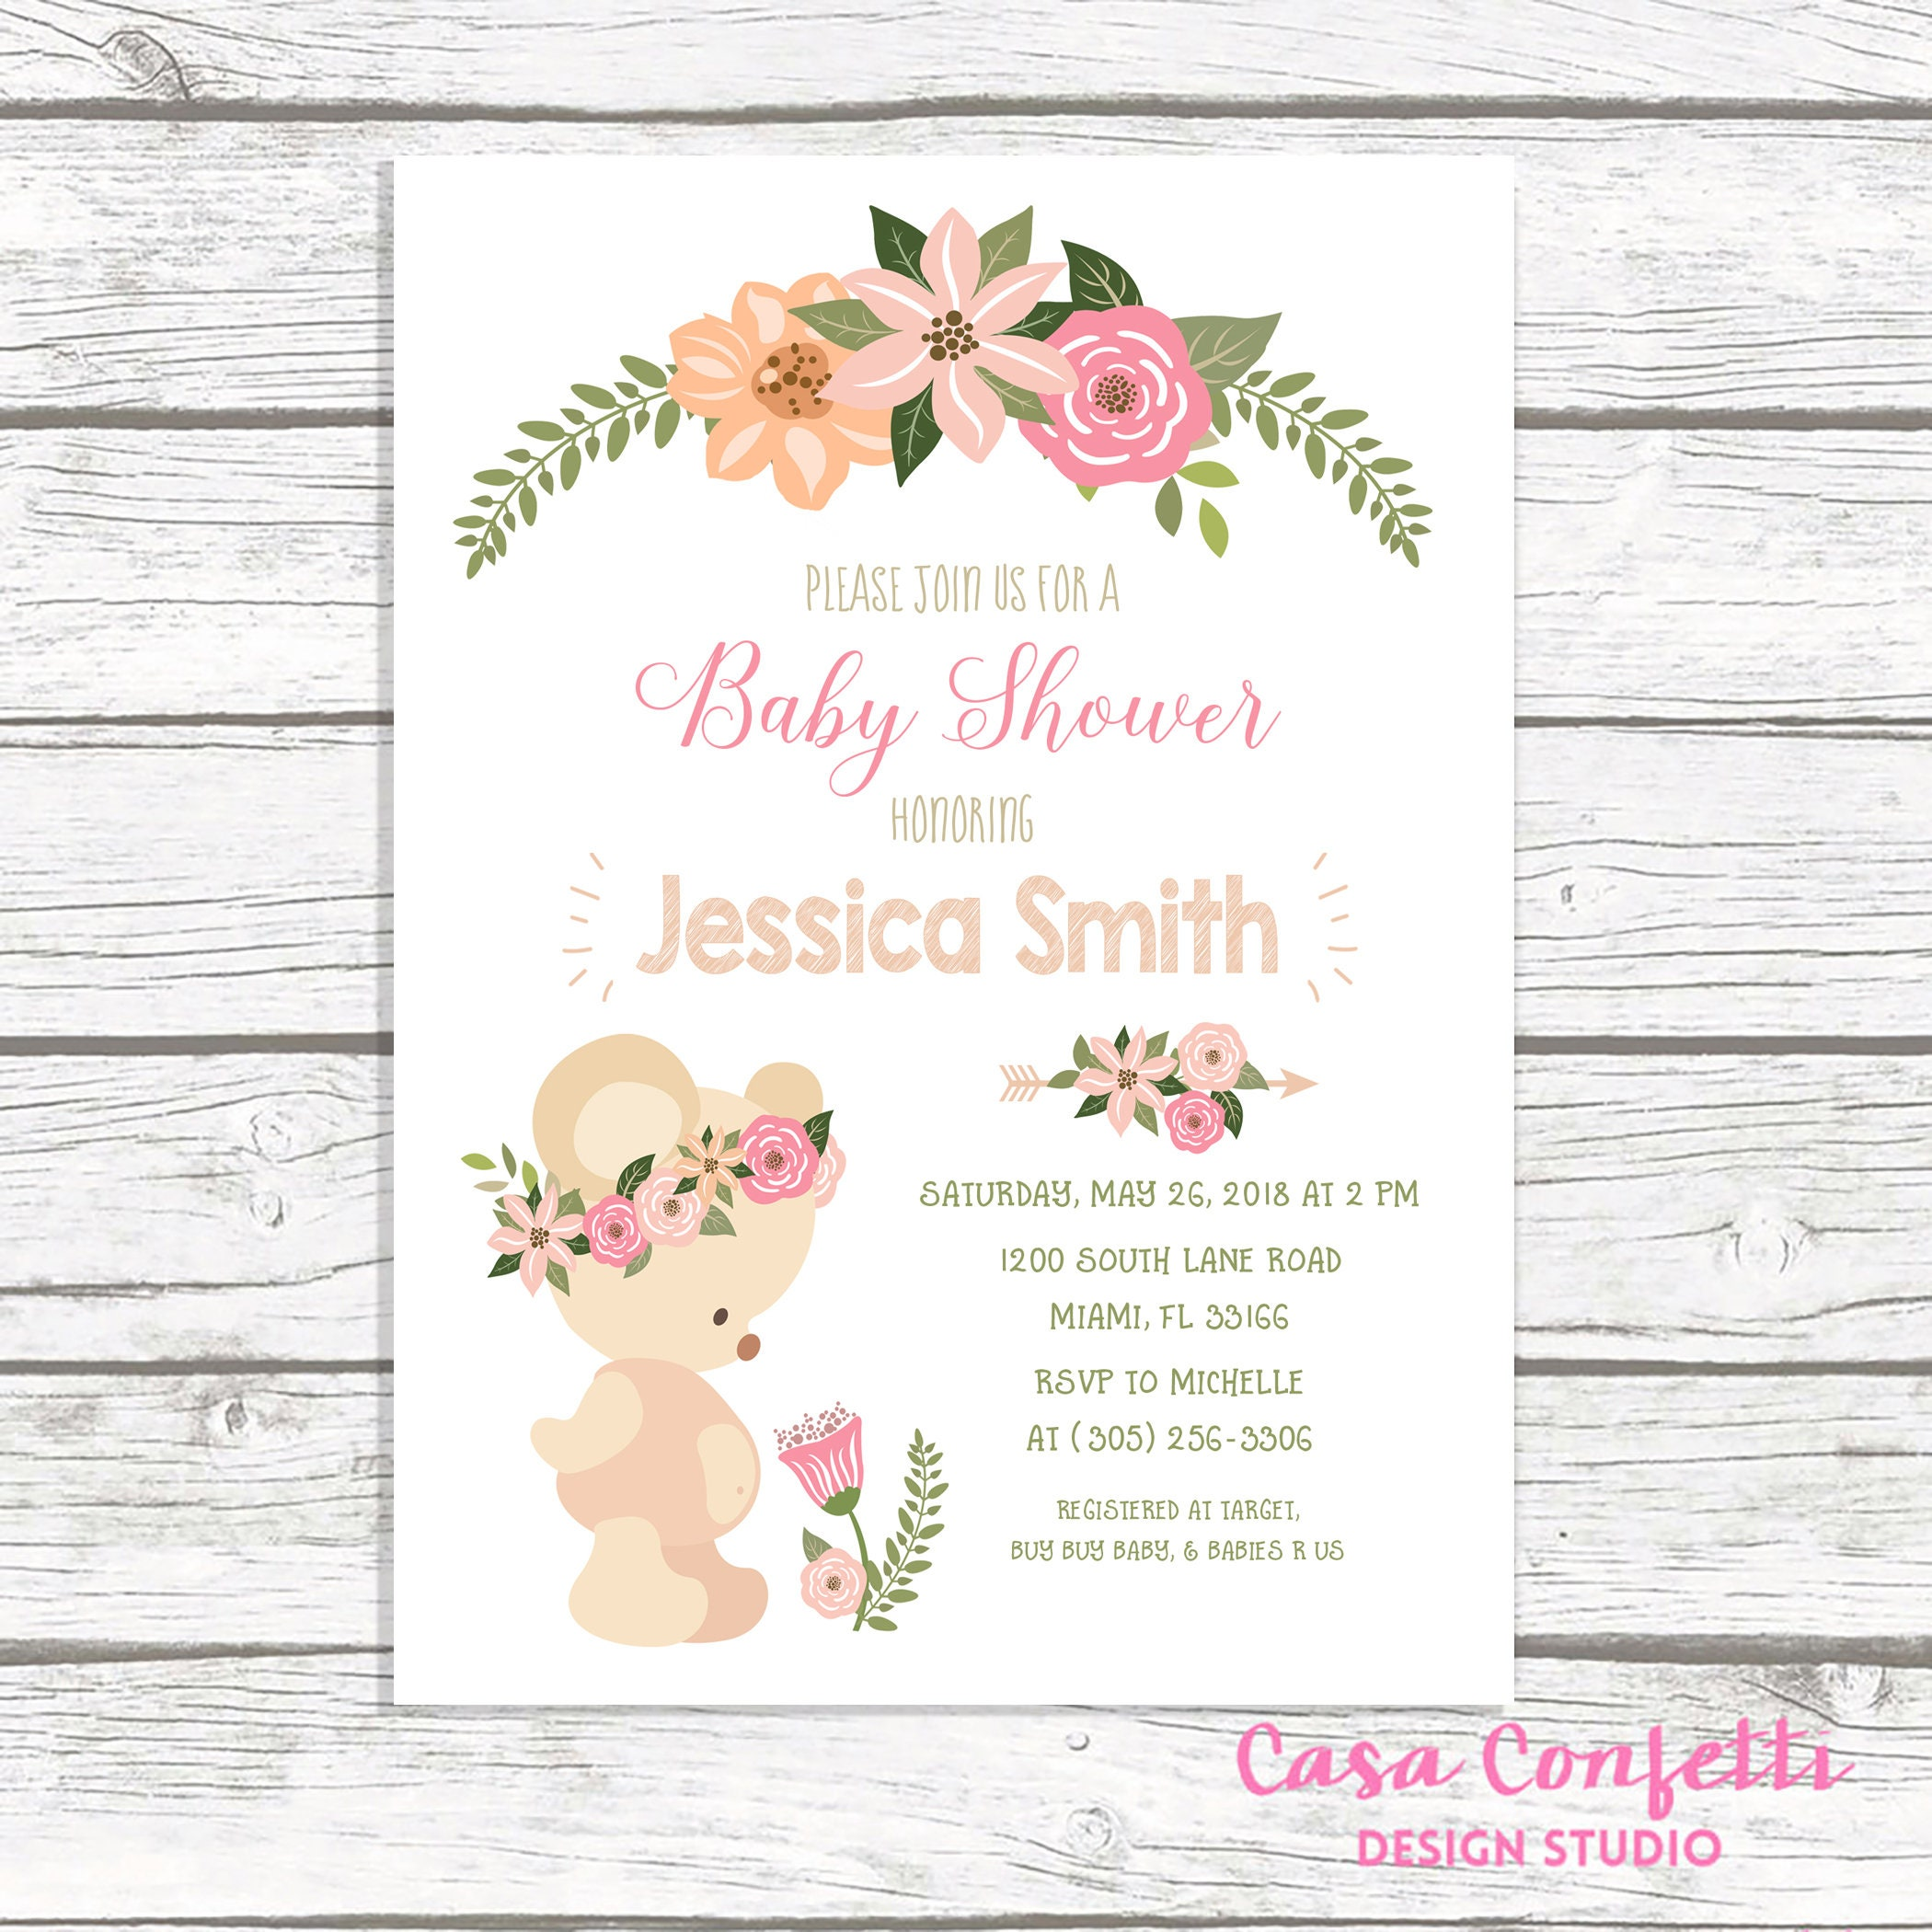 Teddy bear baby shower invitation girl teddy bear invitation boho teddy bear baby shower invitation girl teddy bear invitation boho baby shower invitation floral teddy bear invite printable invite filmwisefo